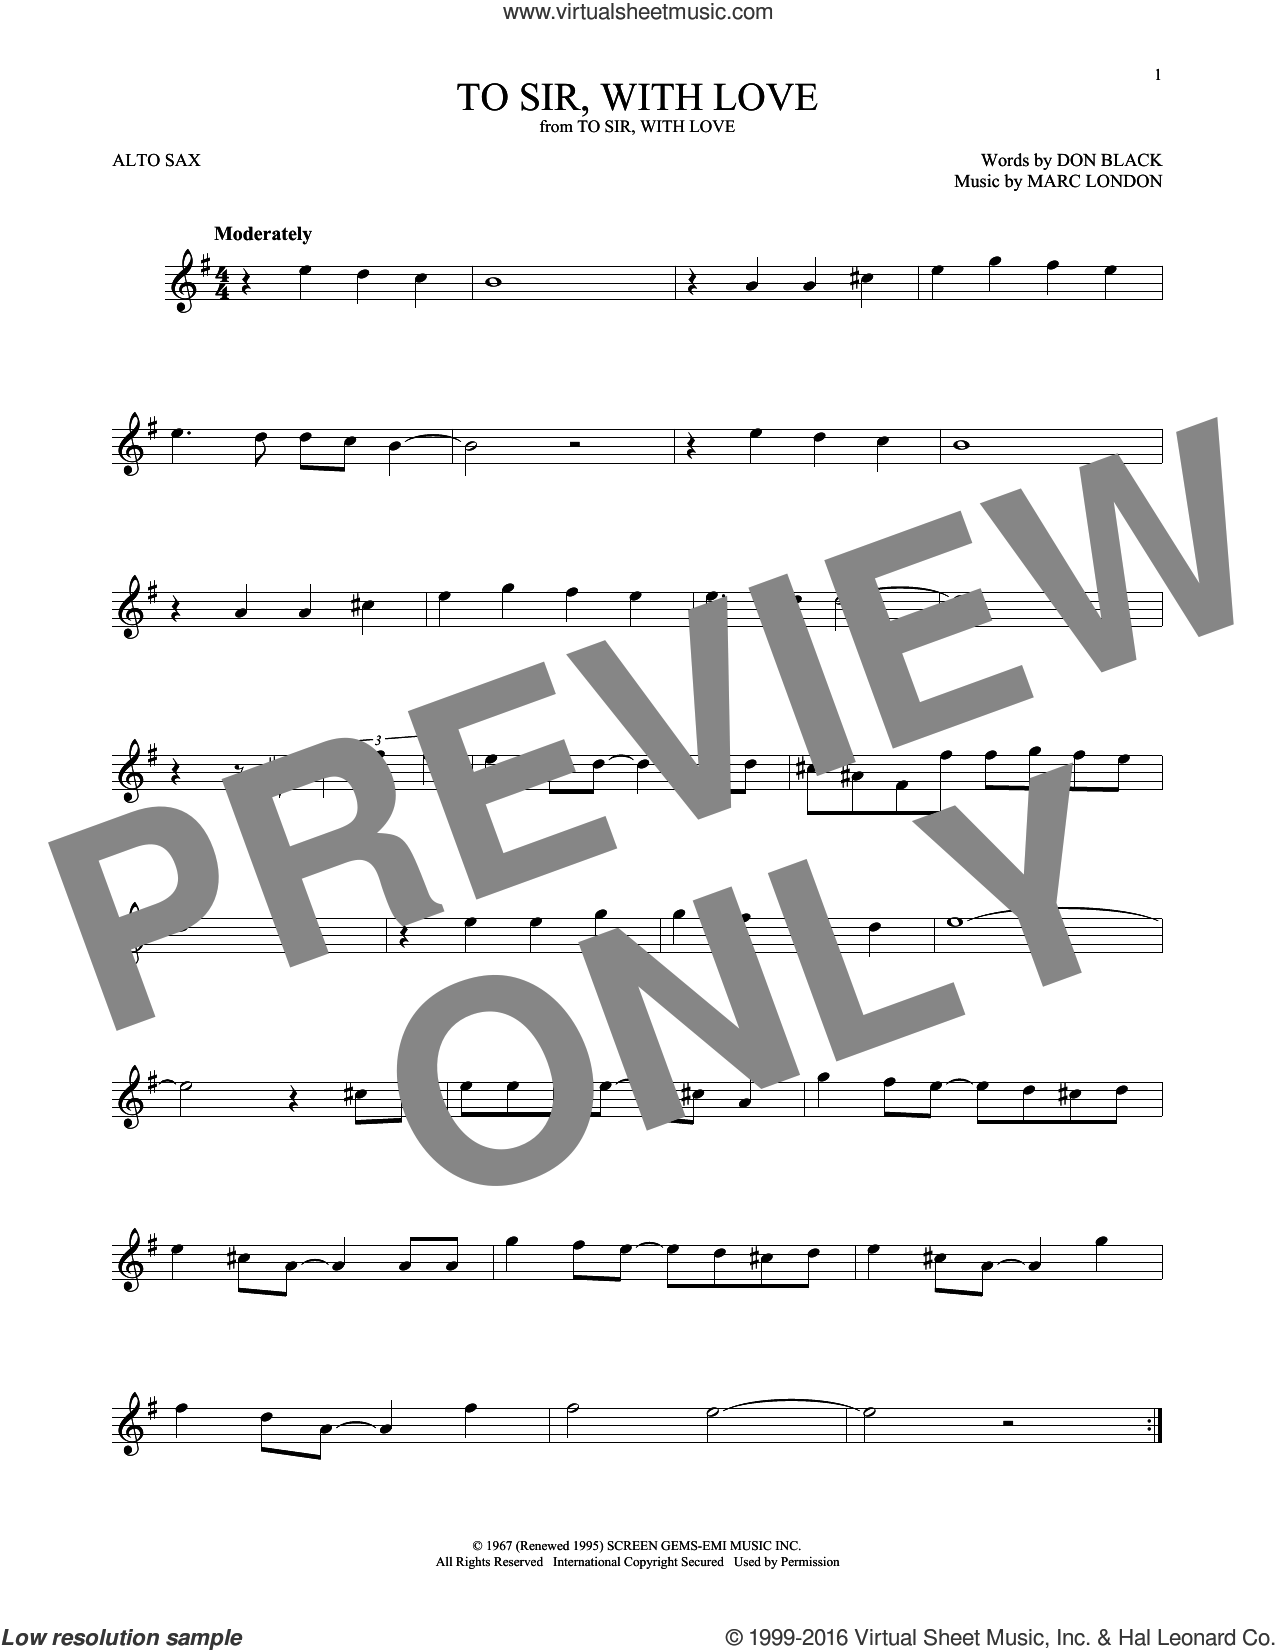 To Sir, With Love sheet music for alto saxophone solo ( Sax) by Marc London, Lulu and Don Black. Score Image Preview.